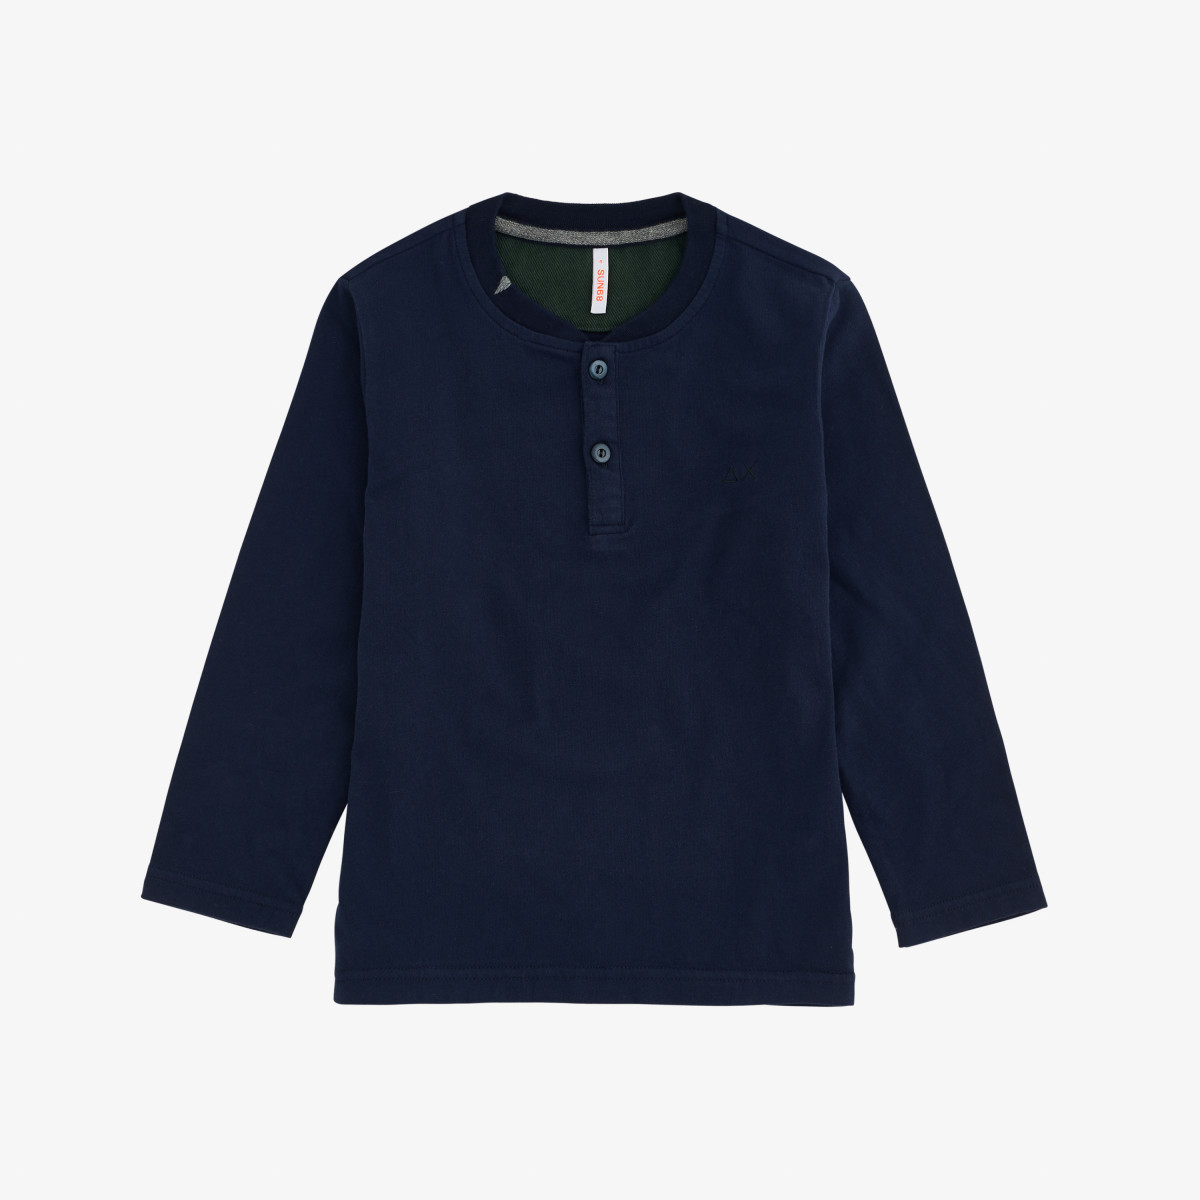 BOY'S SERAFINO L/S NAVY BLUE